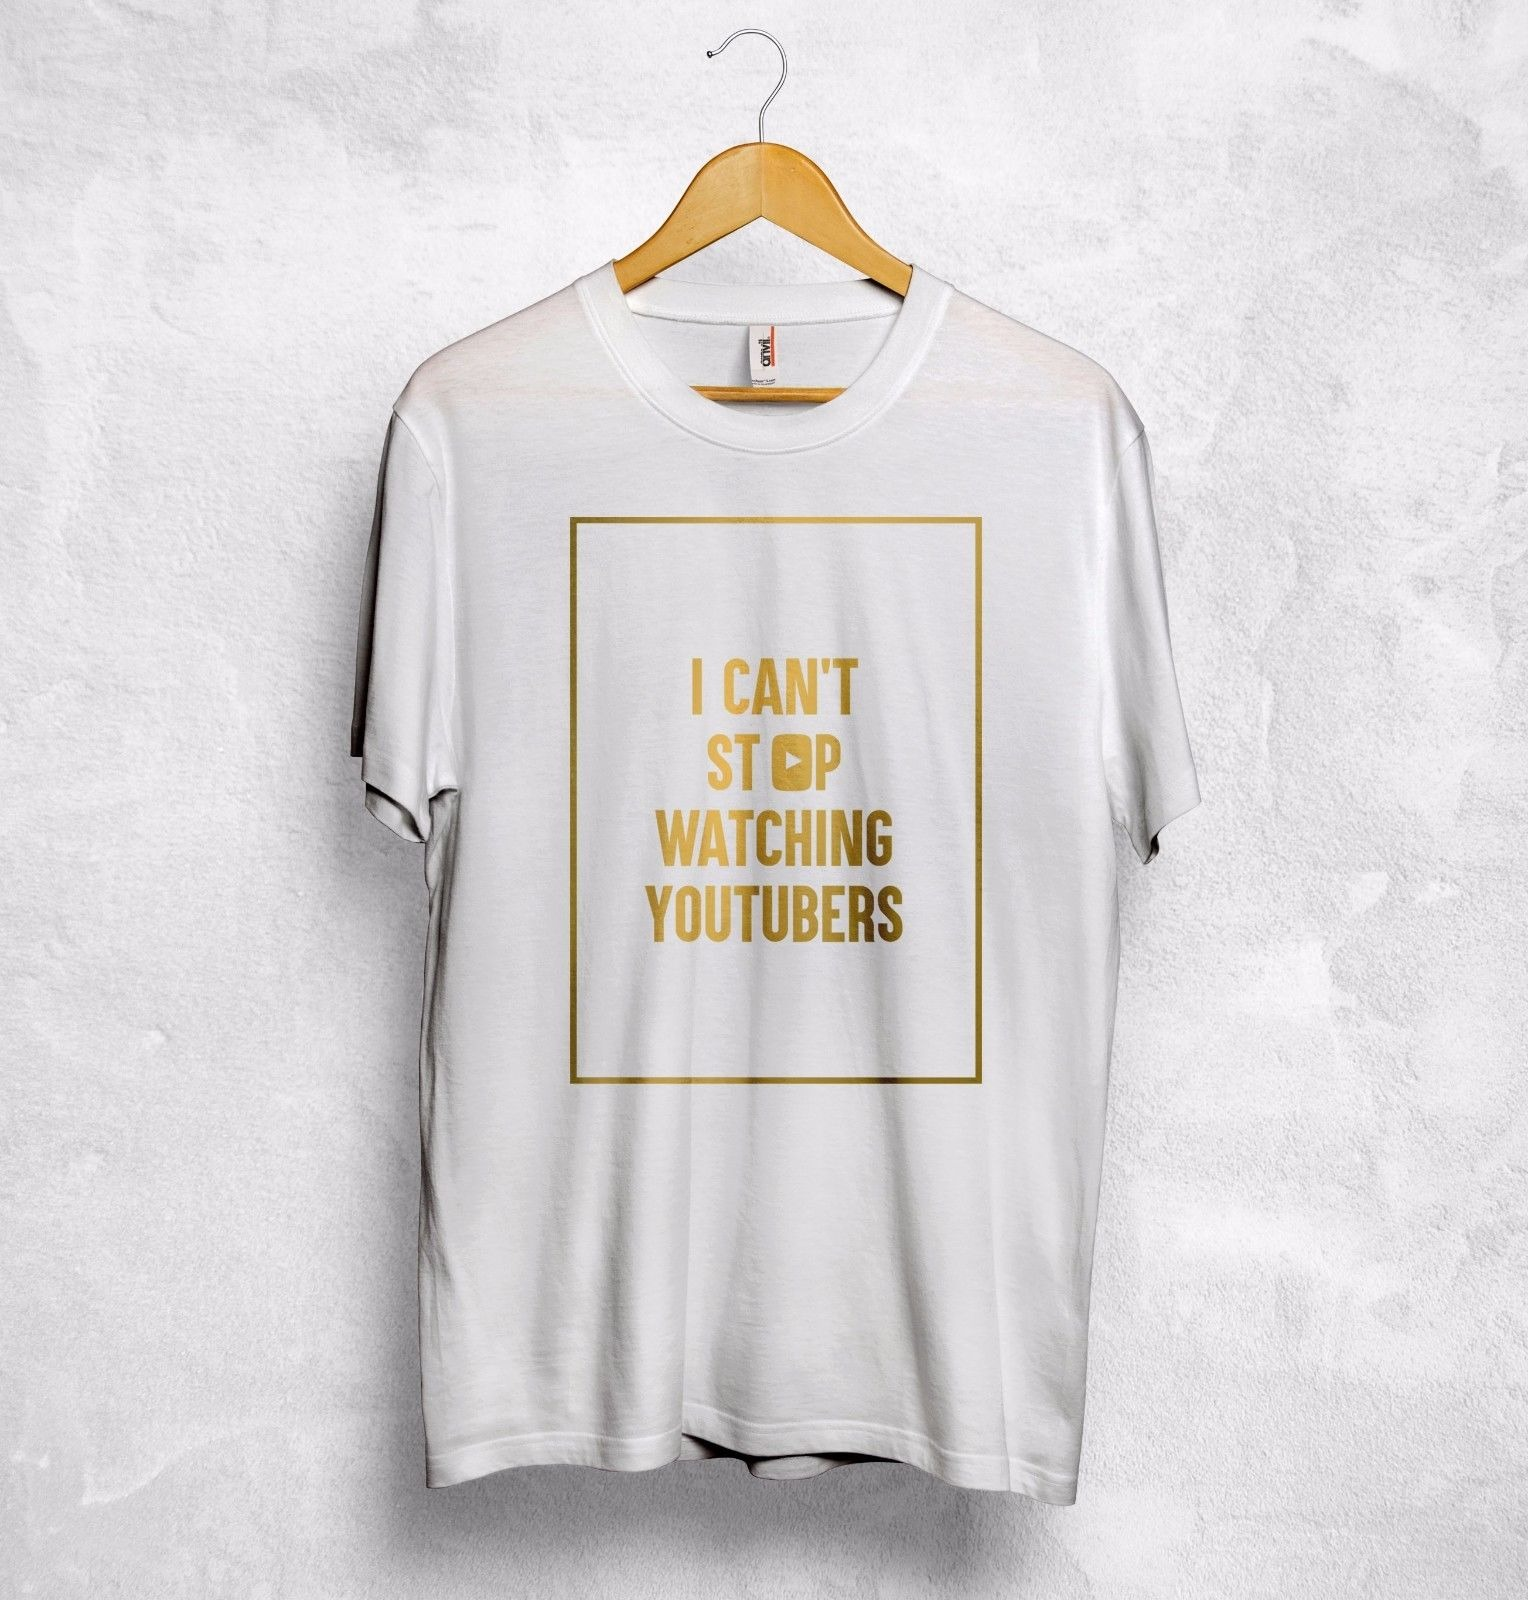 i cant stop watching youtubers t shirt top youtube casey neistat pewdiepie gift t shirt hipster cool o neck tops 8673 - PewDiePie Merch